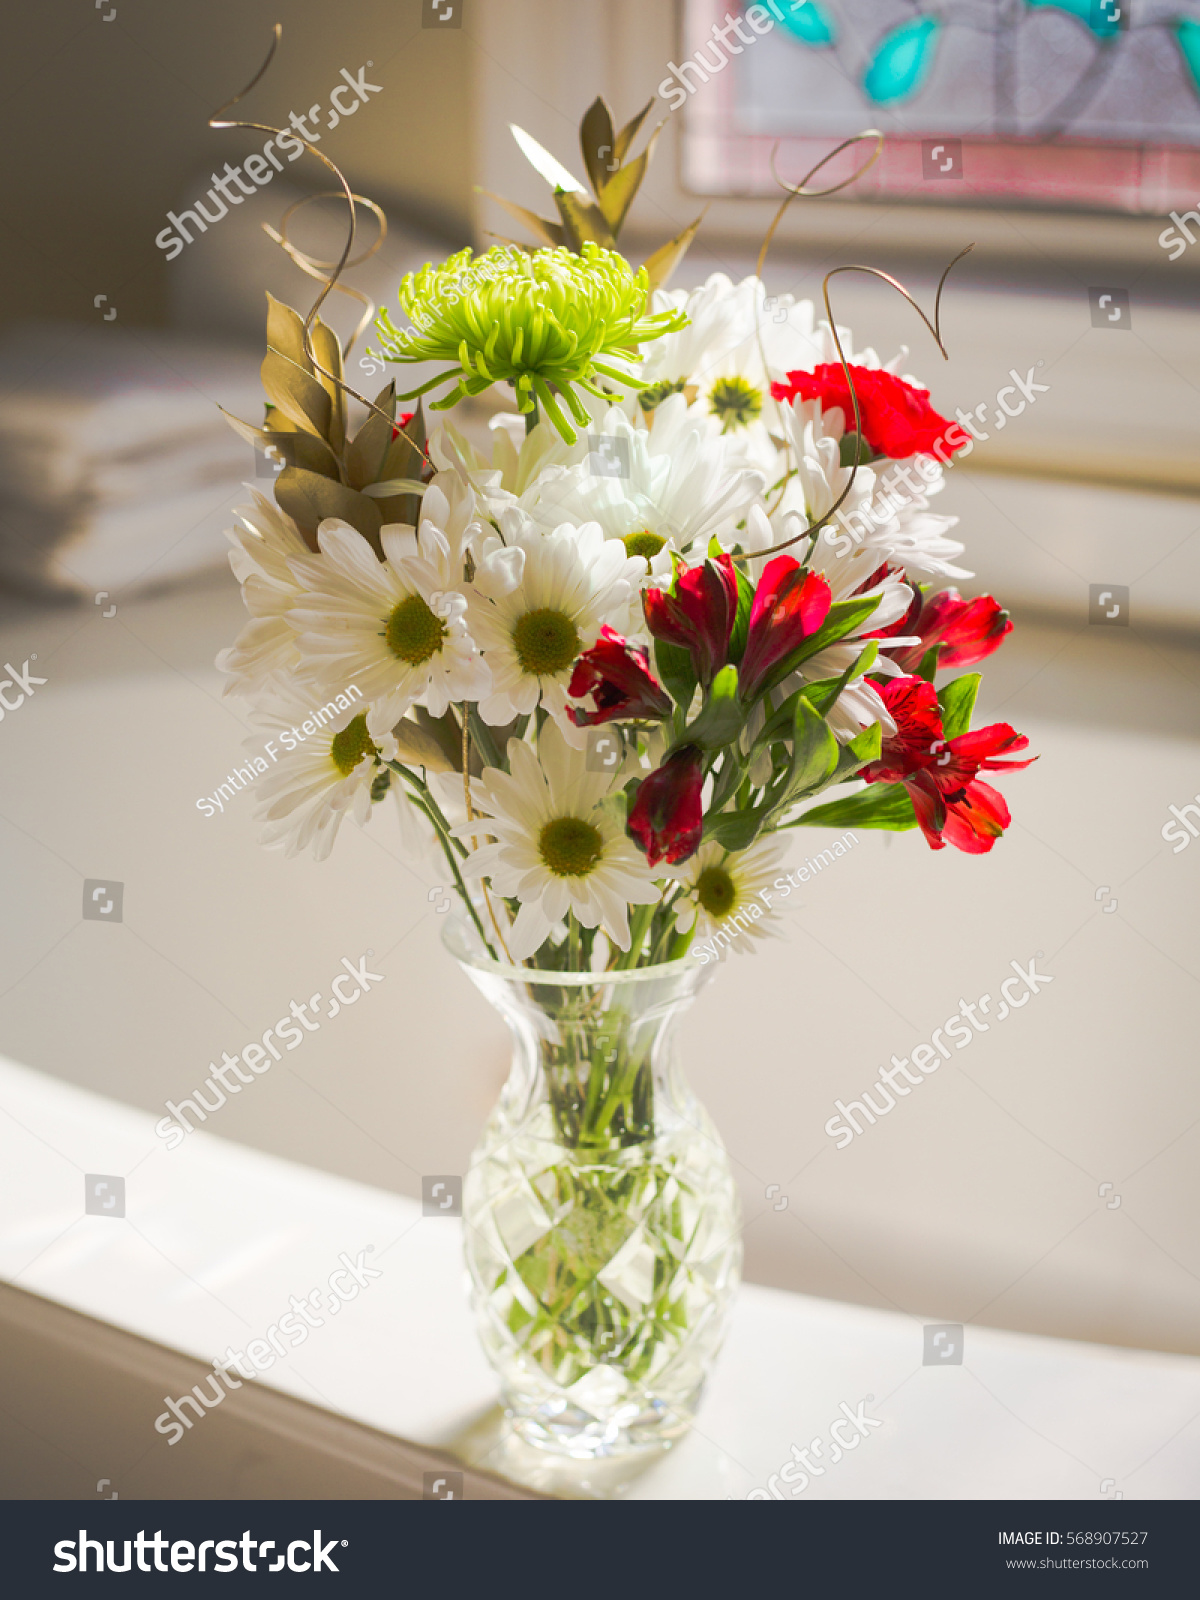 Bouquet Flowers Bathroom Stock Photo Edit Now 568907527